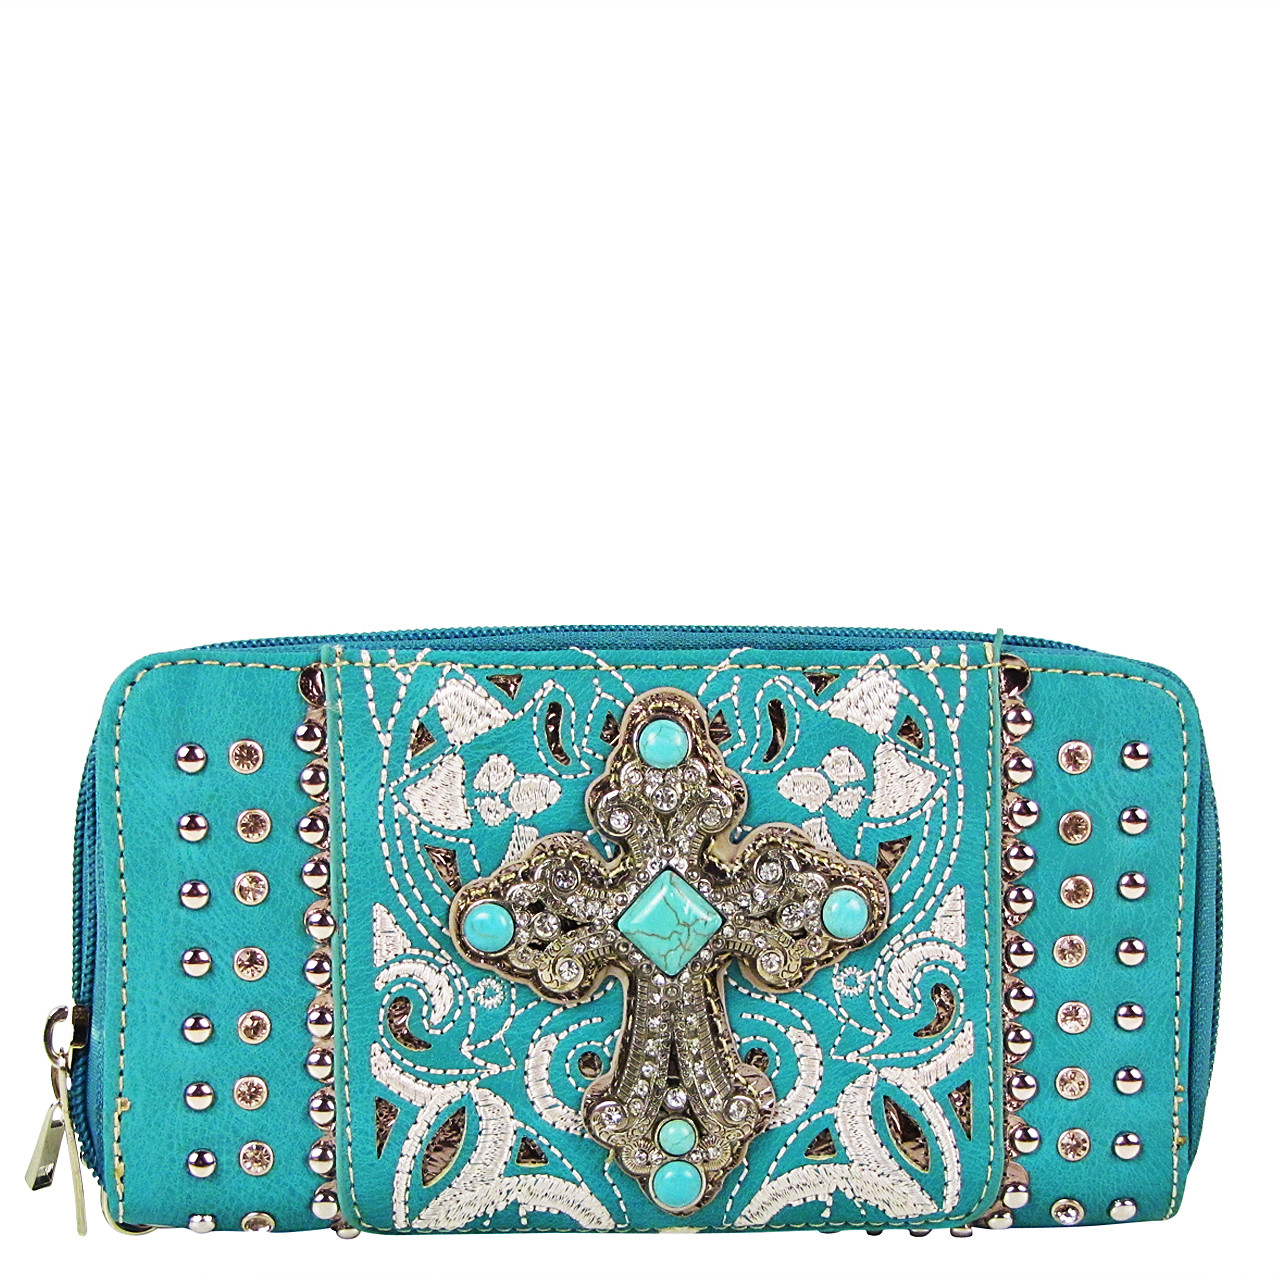 TURQUOISE STUDDED RHINESTONE CROSS LOOK ZIPPER WALLET CB3-0409TRQ